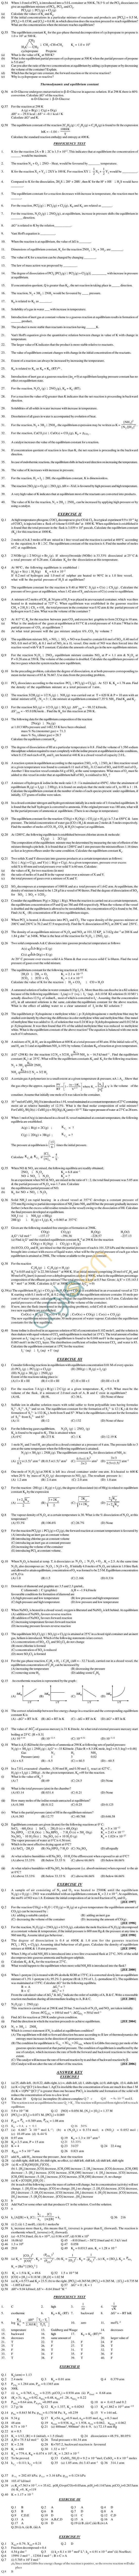 Chemistry Study Material - Chapter 6